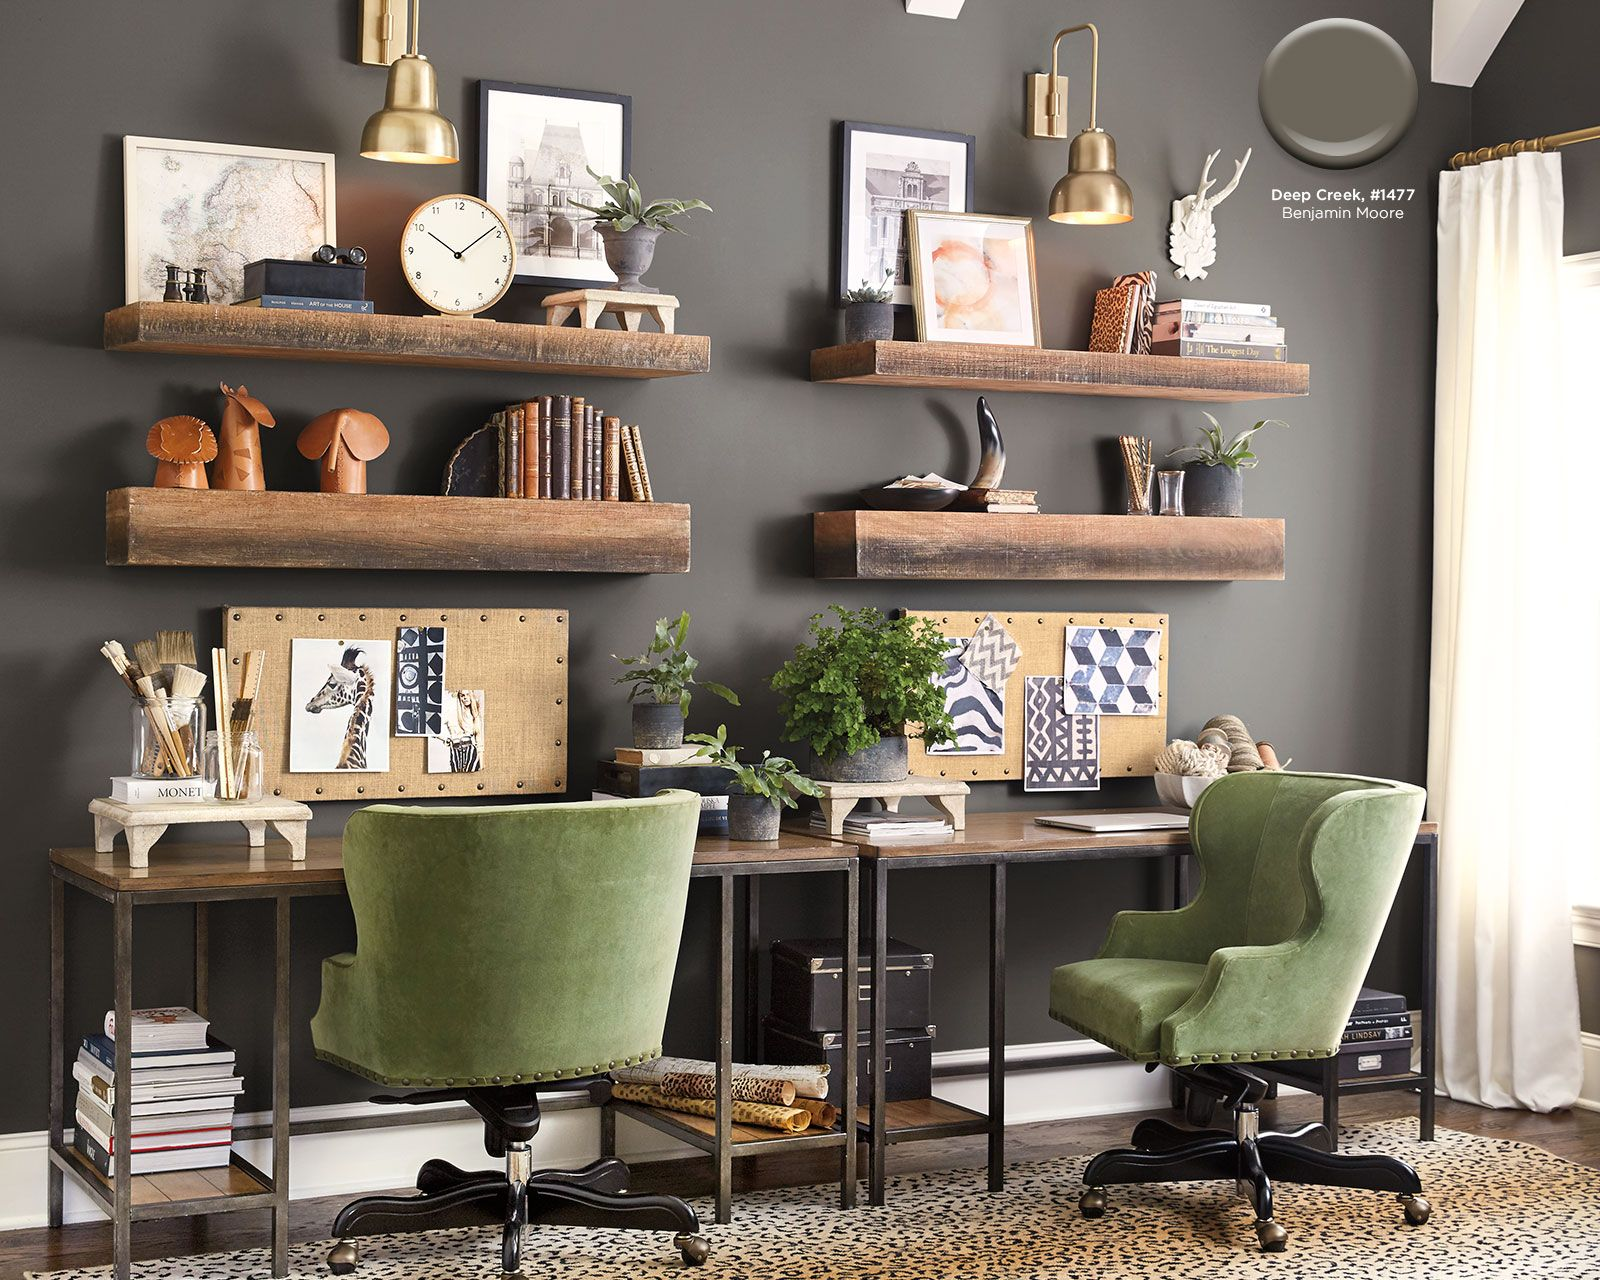 Benjamin moores deep creek paint color in ballard designs catalog office decor home office